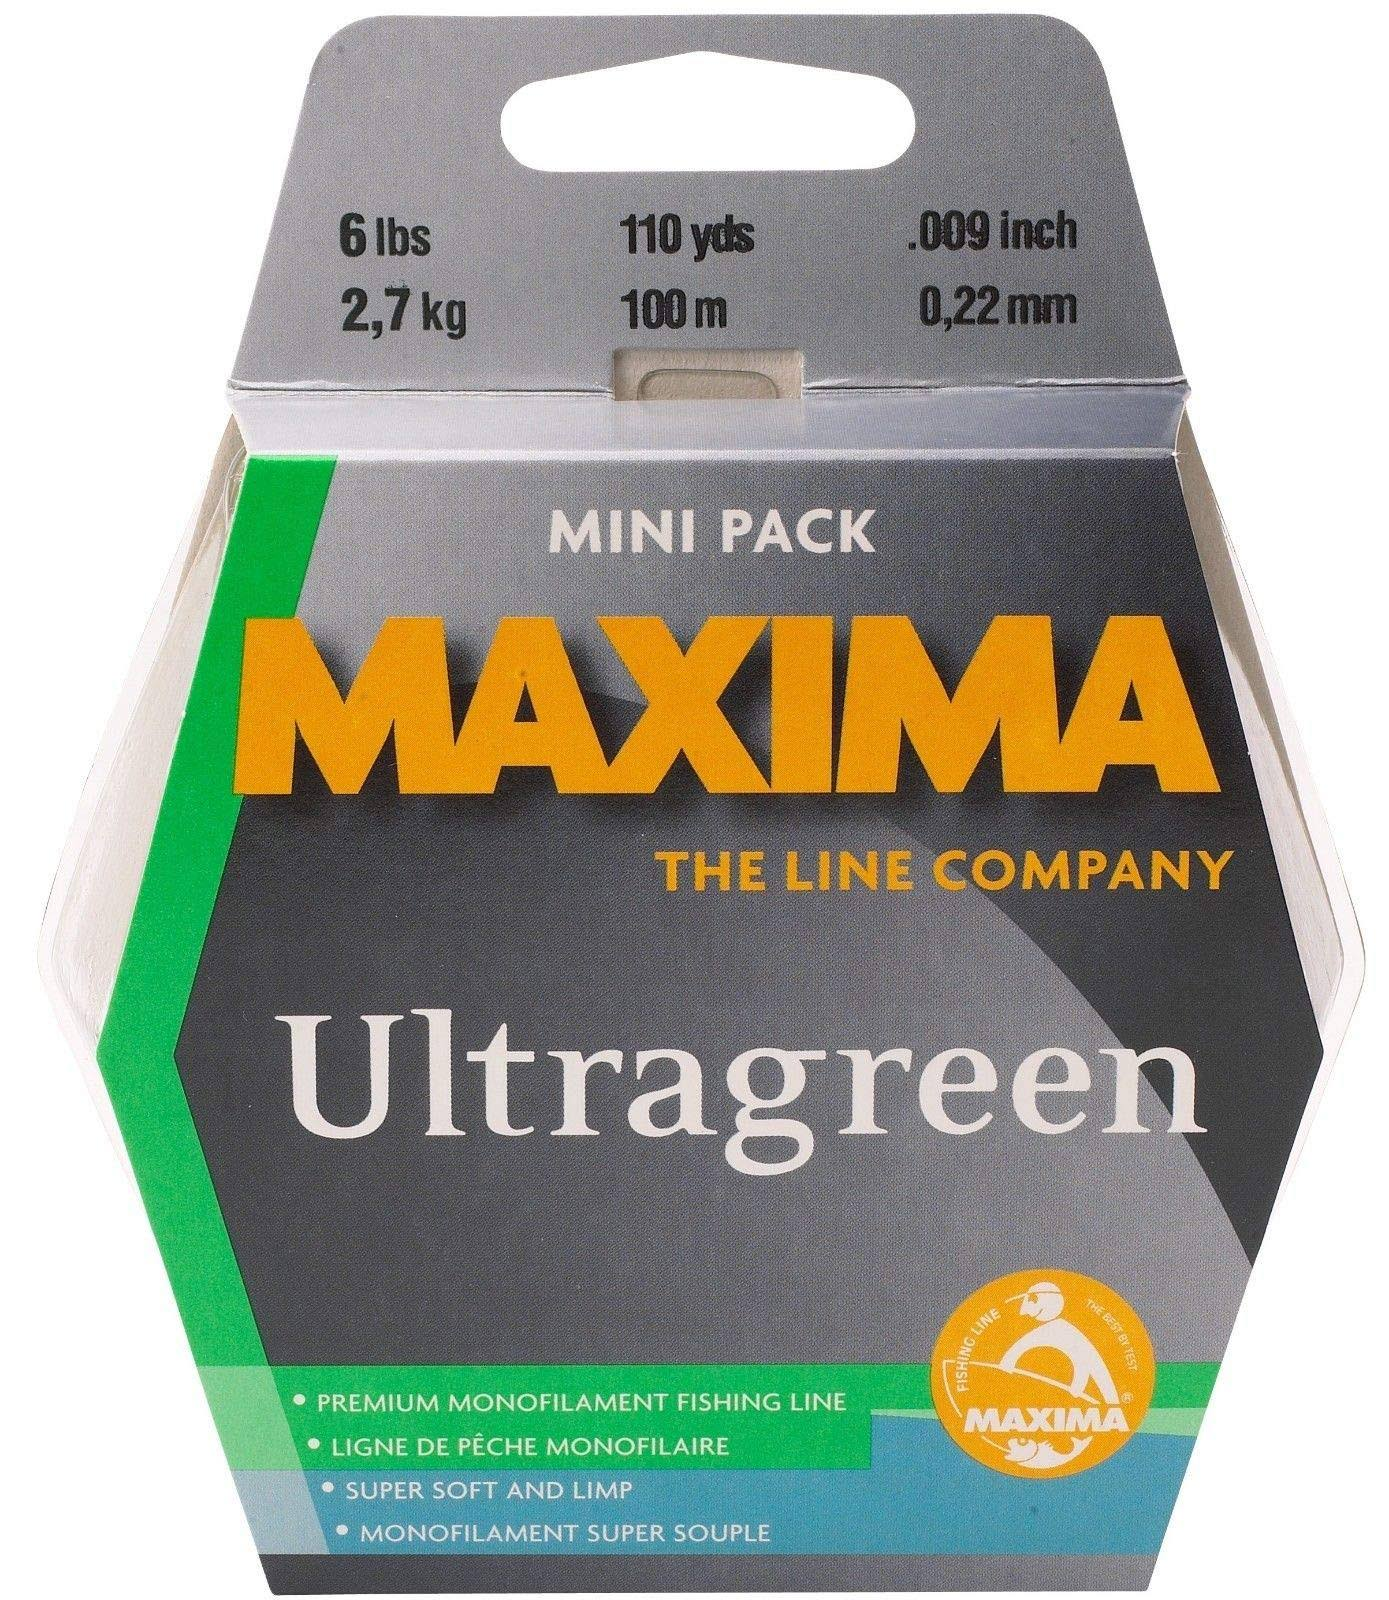 Maxima Ultragreen Mini Pack 4lb 110yds